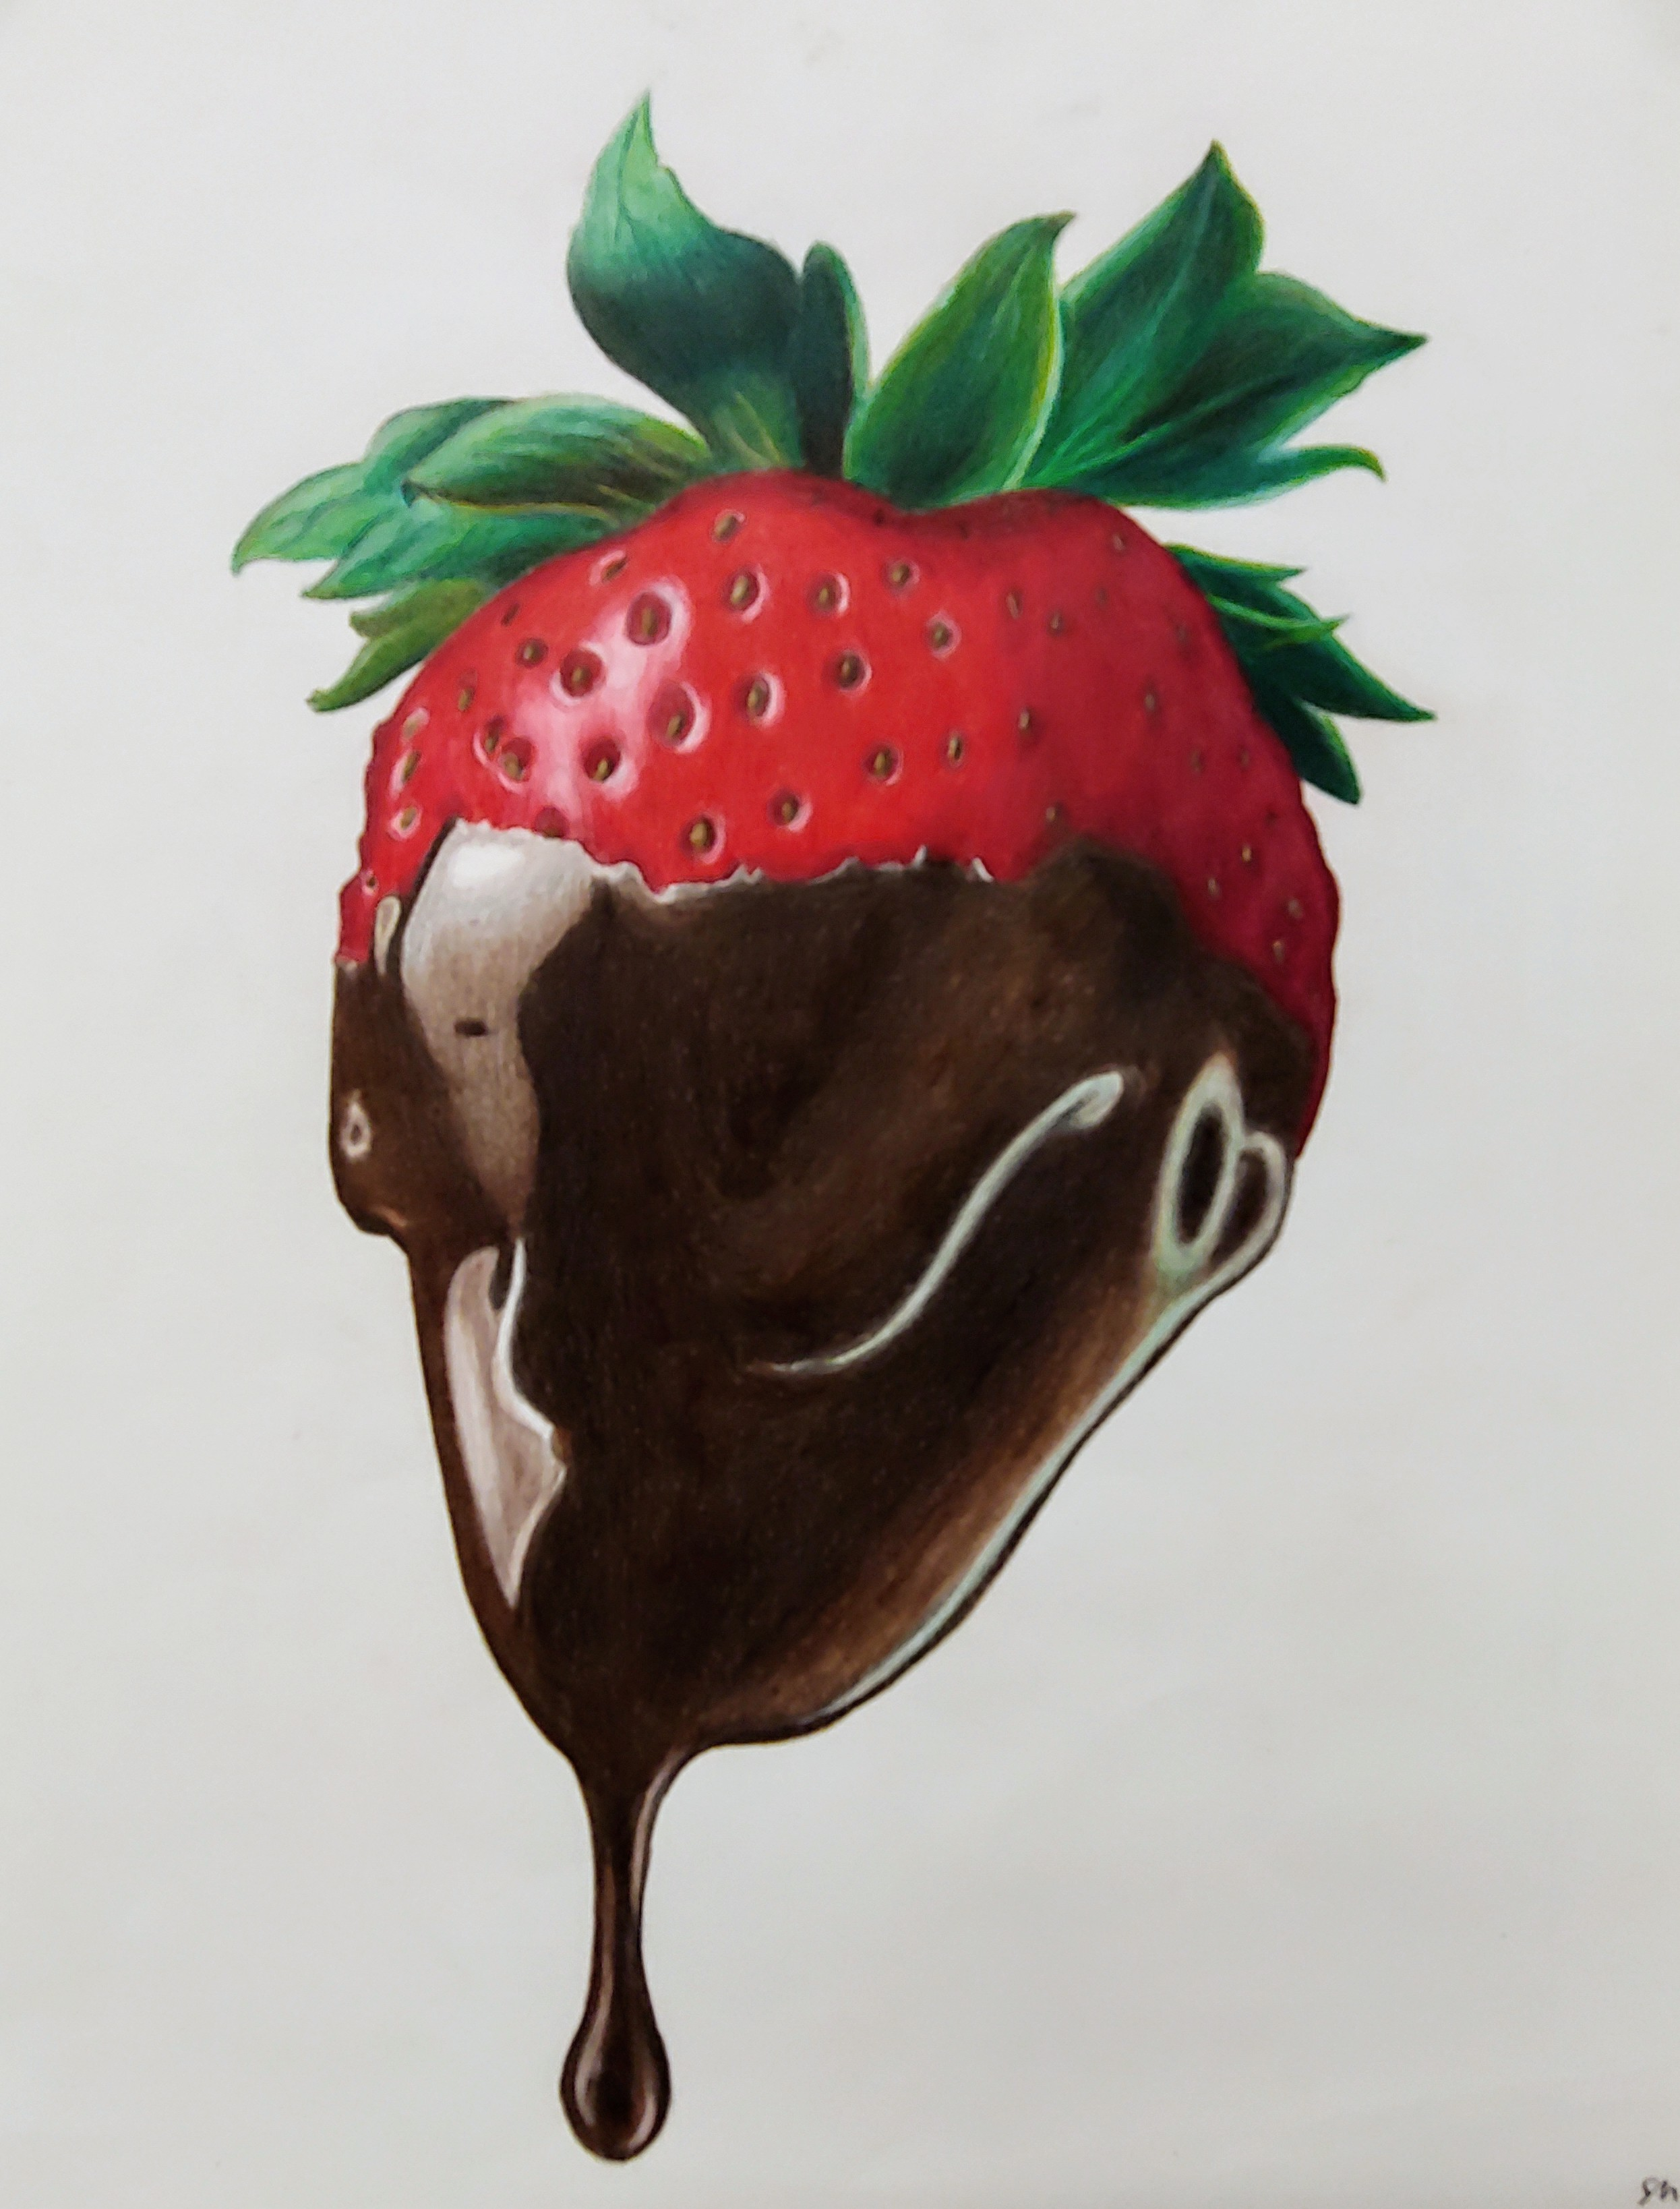 Seager Hunt - 20 - strawberry